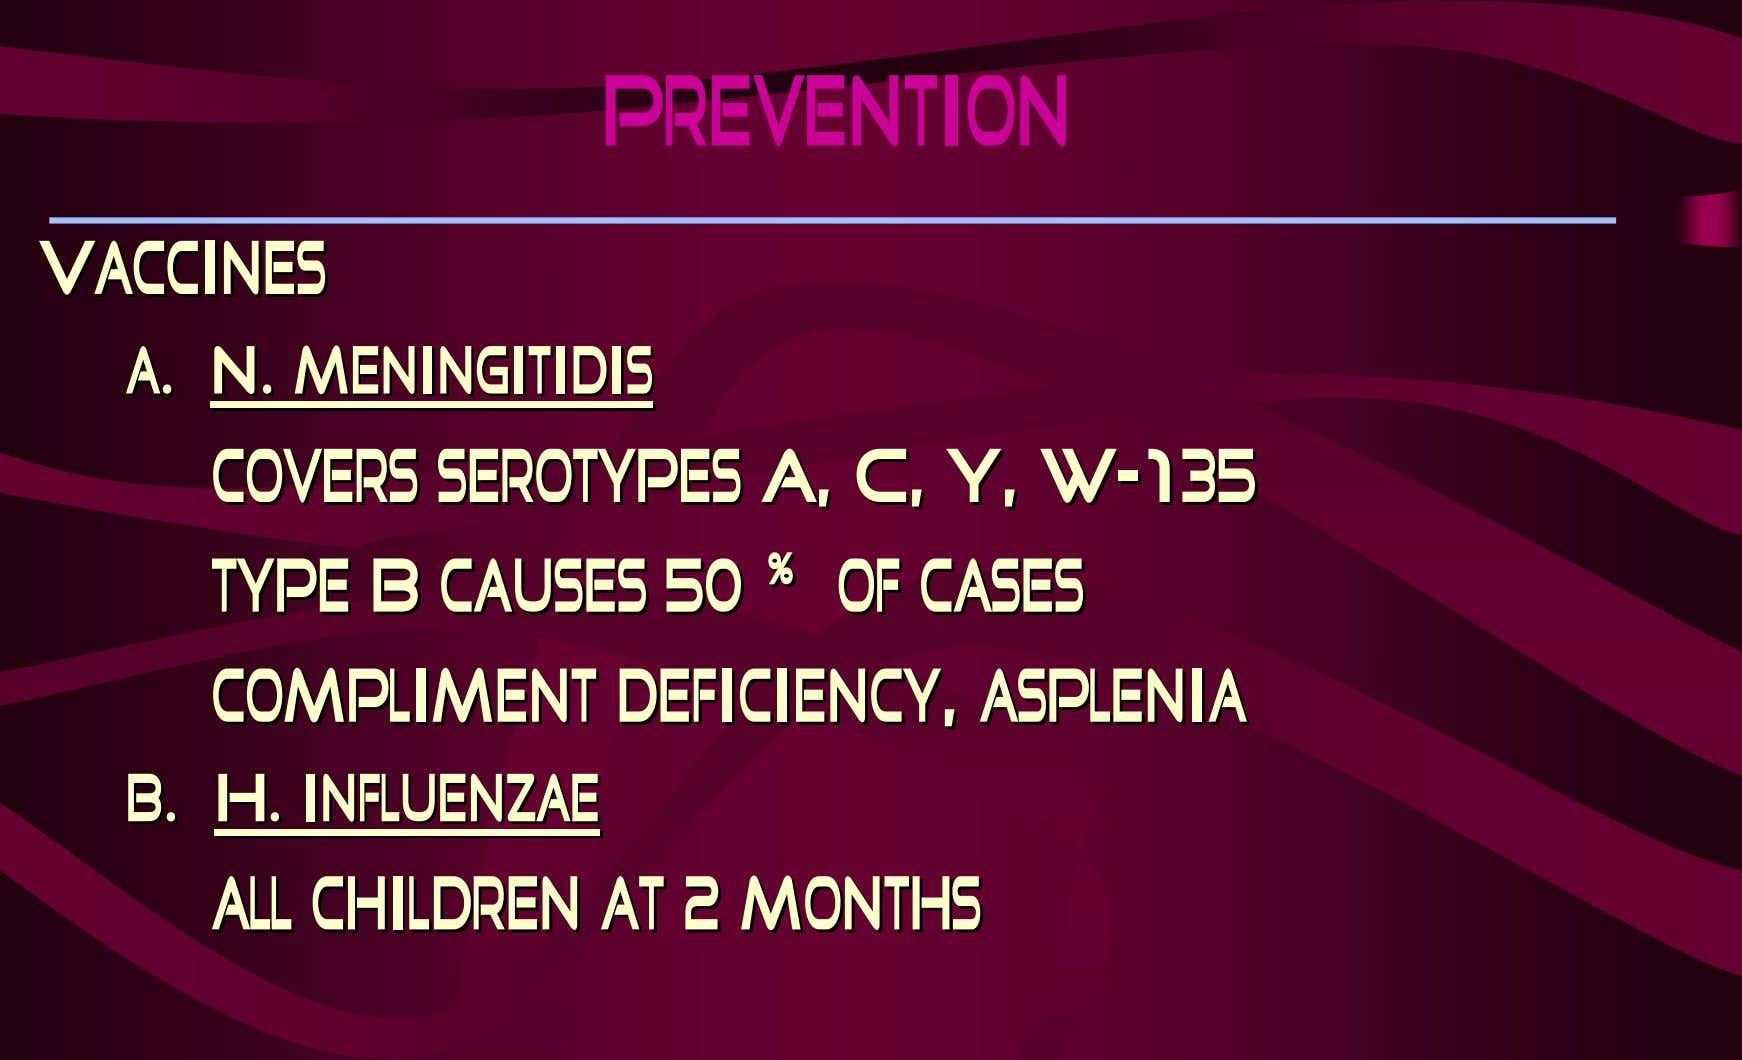 Prevention VaccinesVaccines a.a. N.N. meningitidismeningitidis covers serotypes A, C, Y, W--135135 covers serotypes